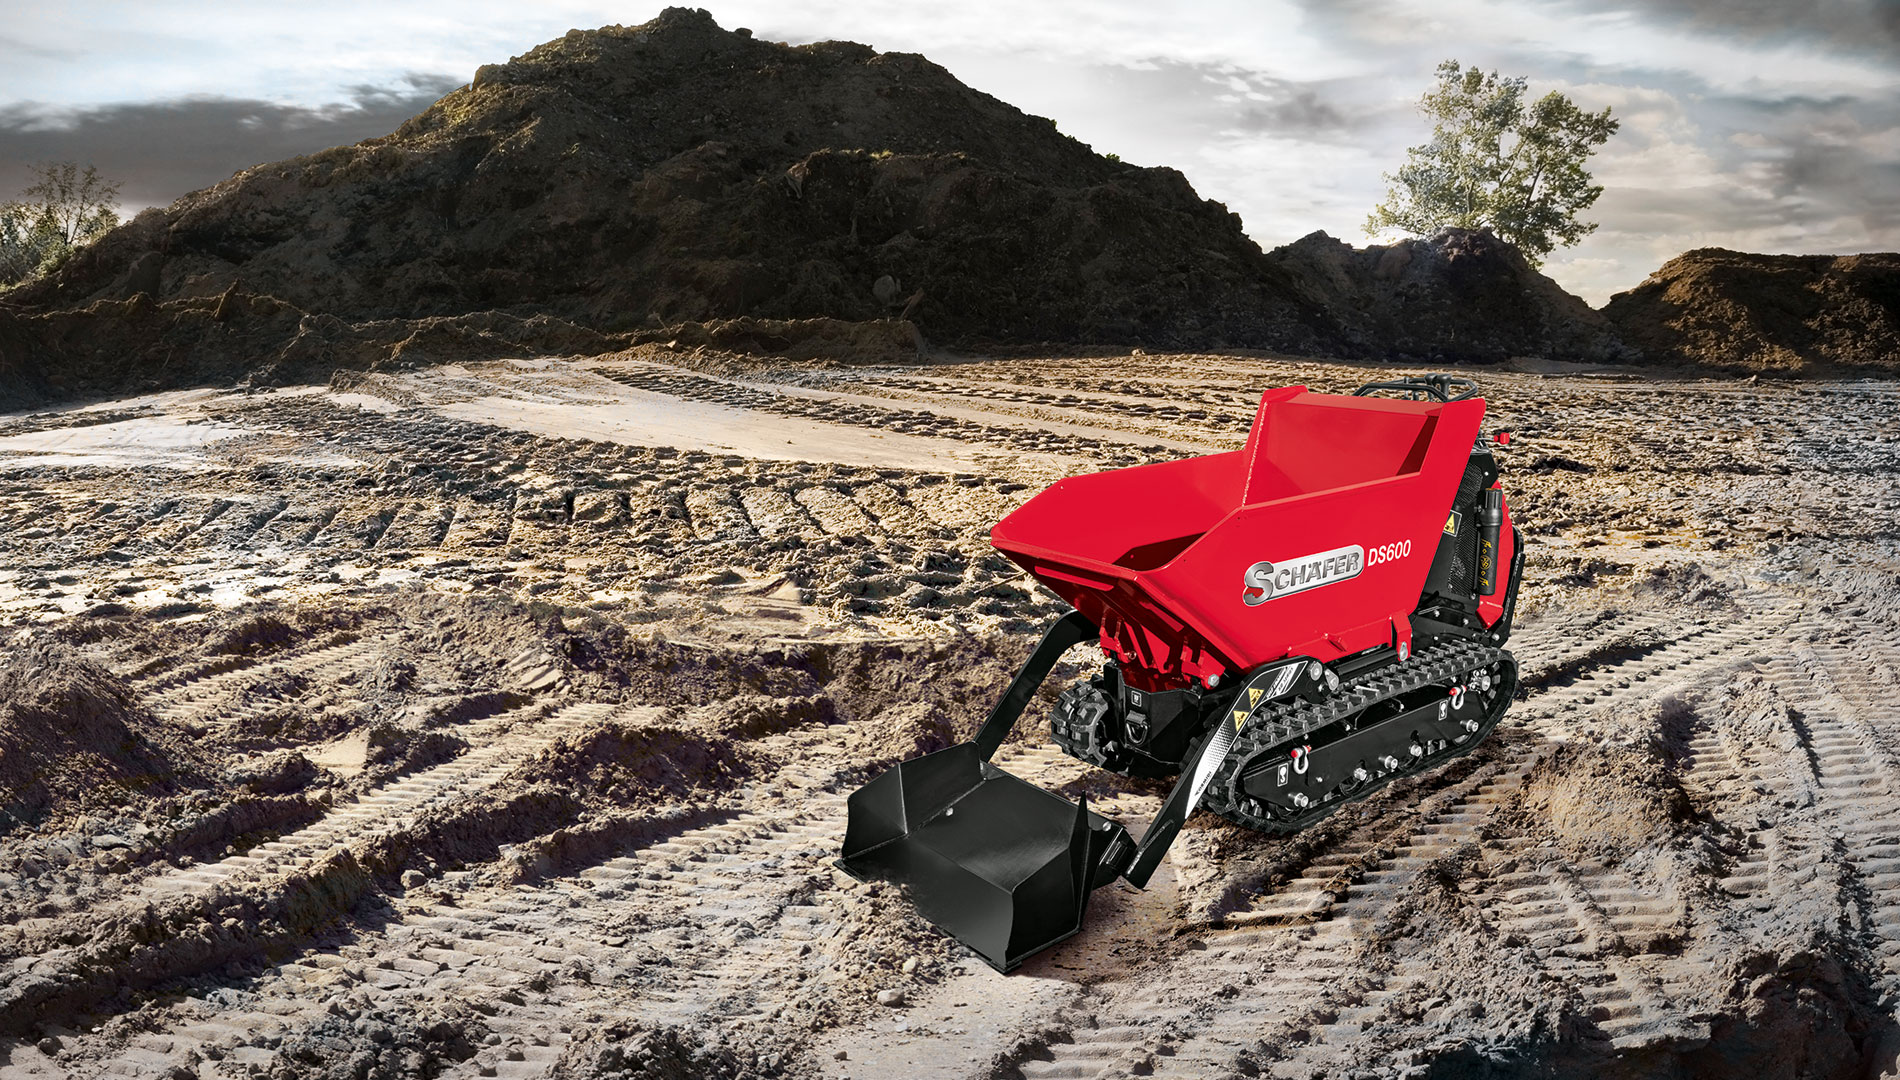 SCHAFER DS 600 D Dumpers